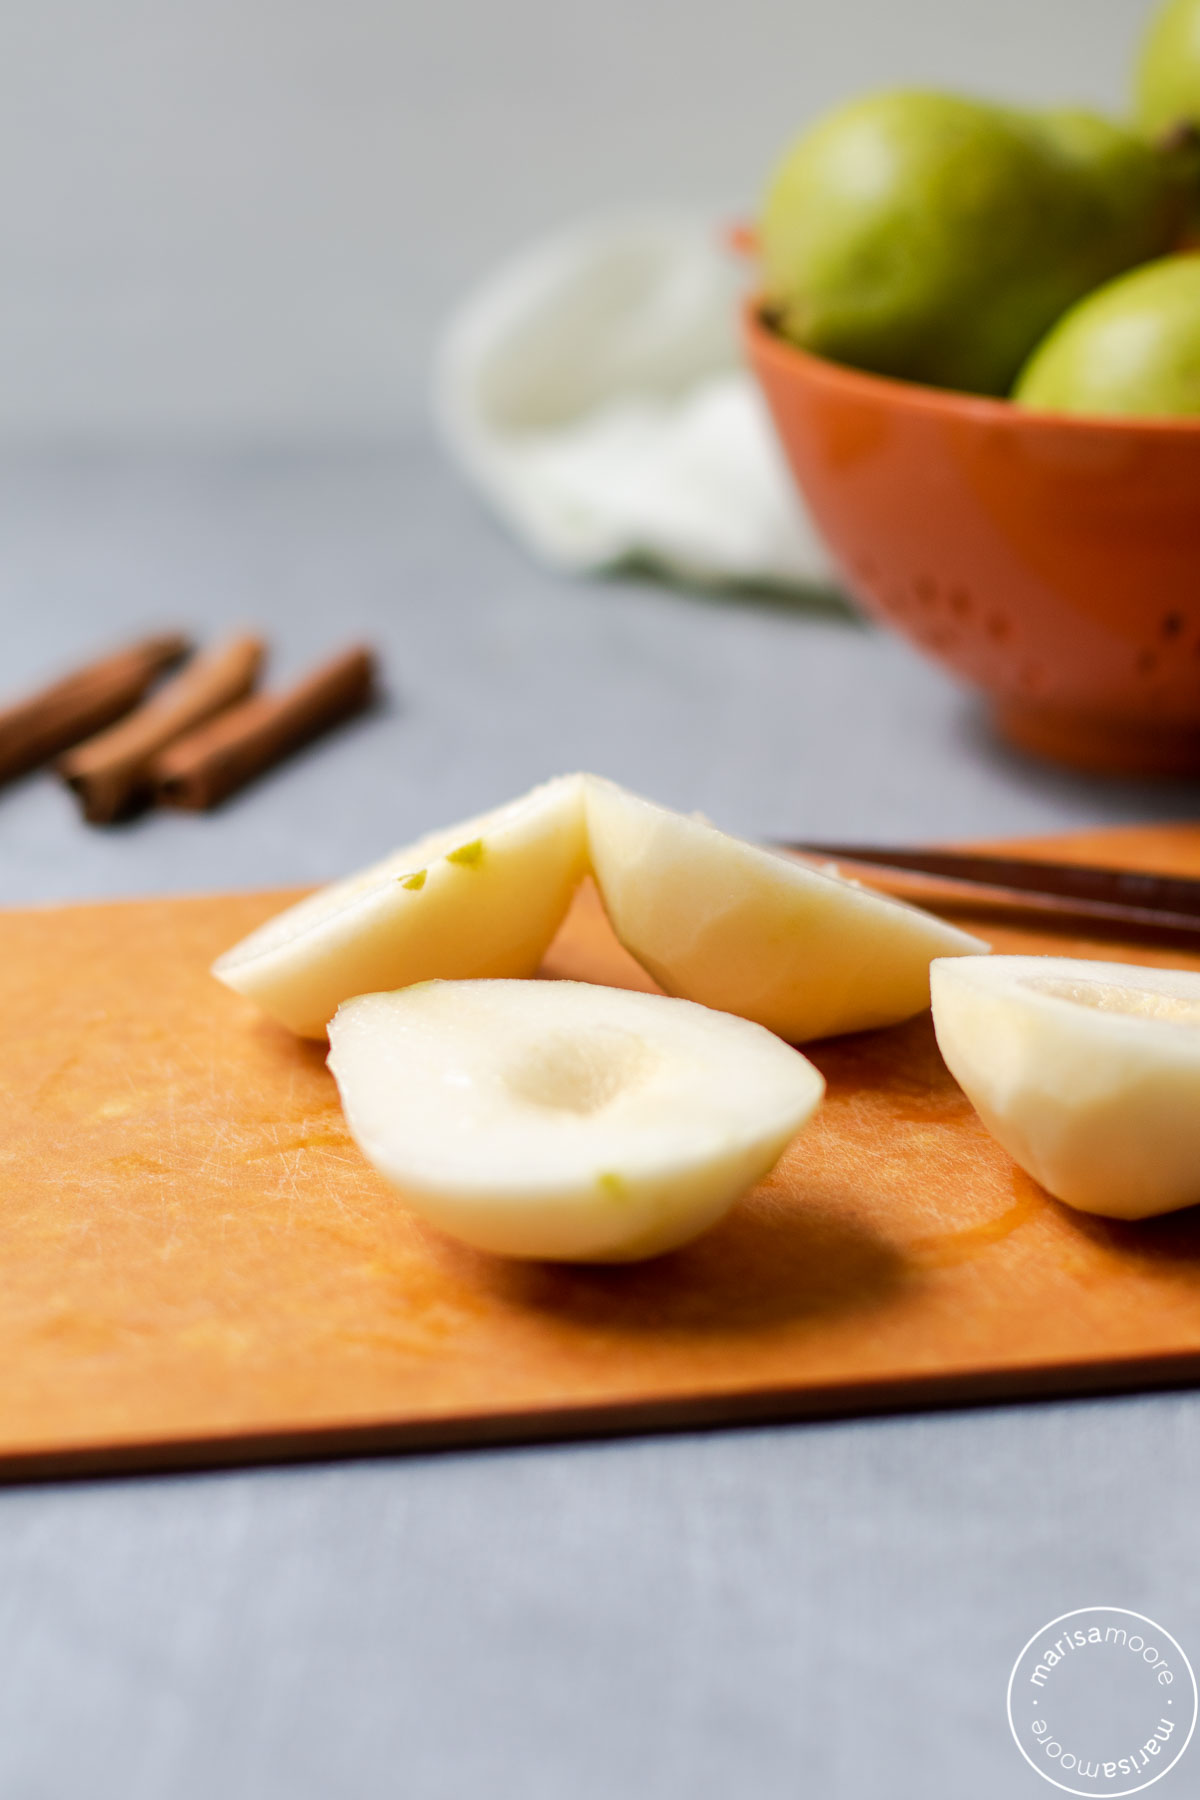 peeled, halved, and scooped pears on a cutting board with whole pears in background